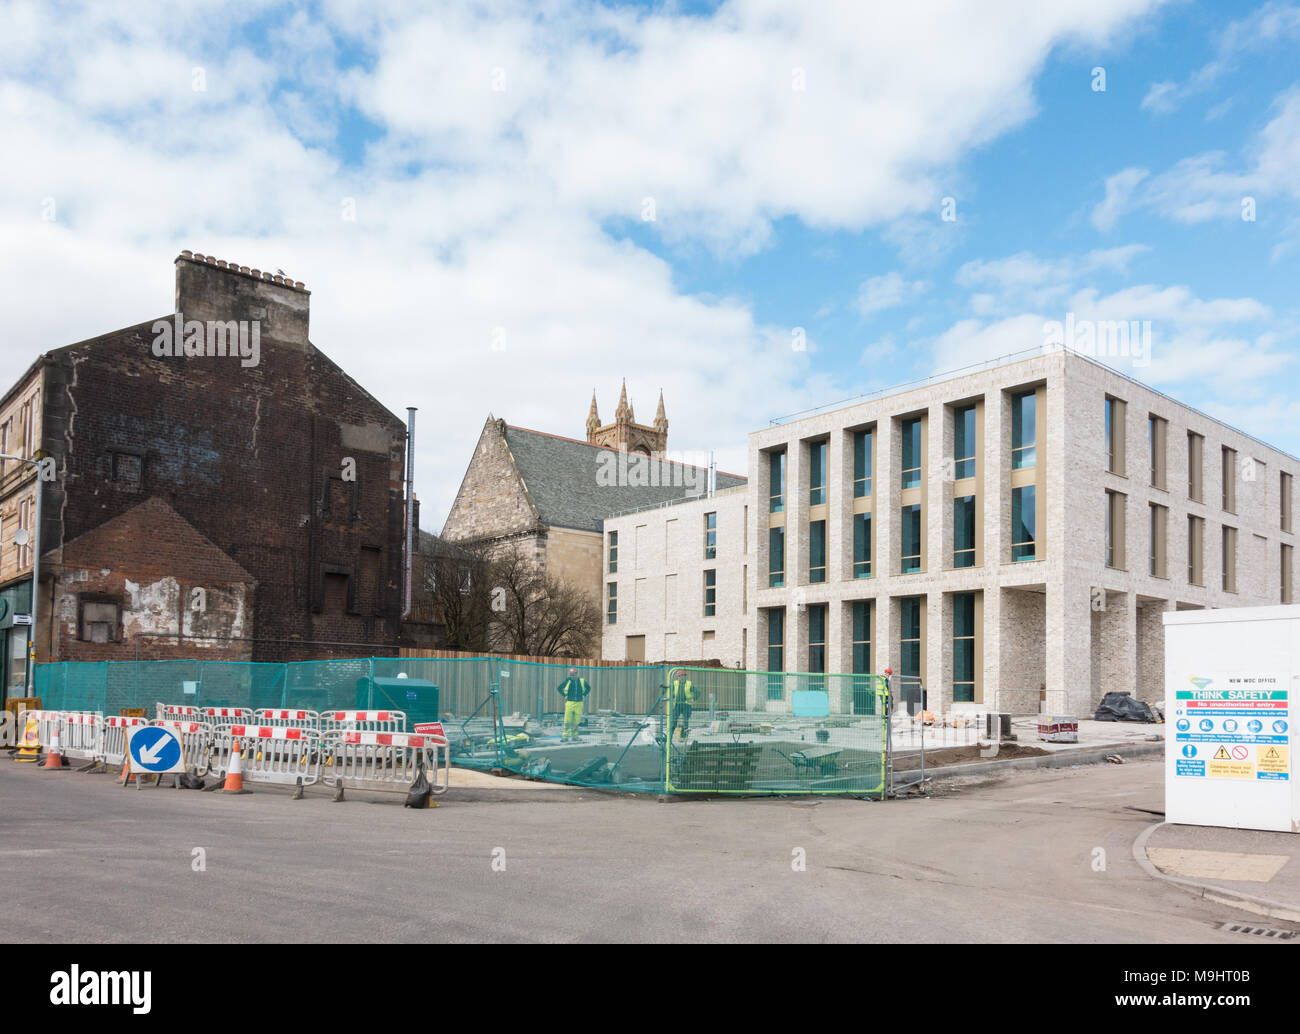 new West Dunbartonshire council's Dumbarton town centre offices during construction, Dumbarton, Scotland, UK - Stock Image